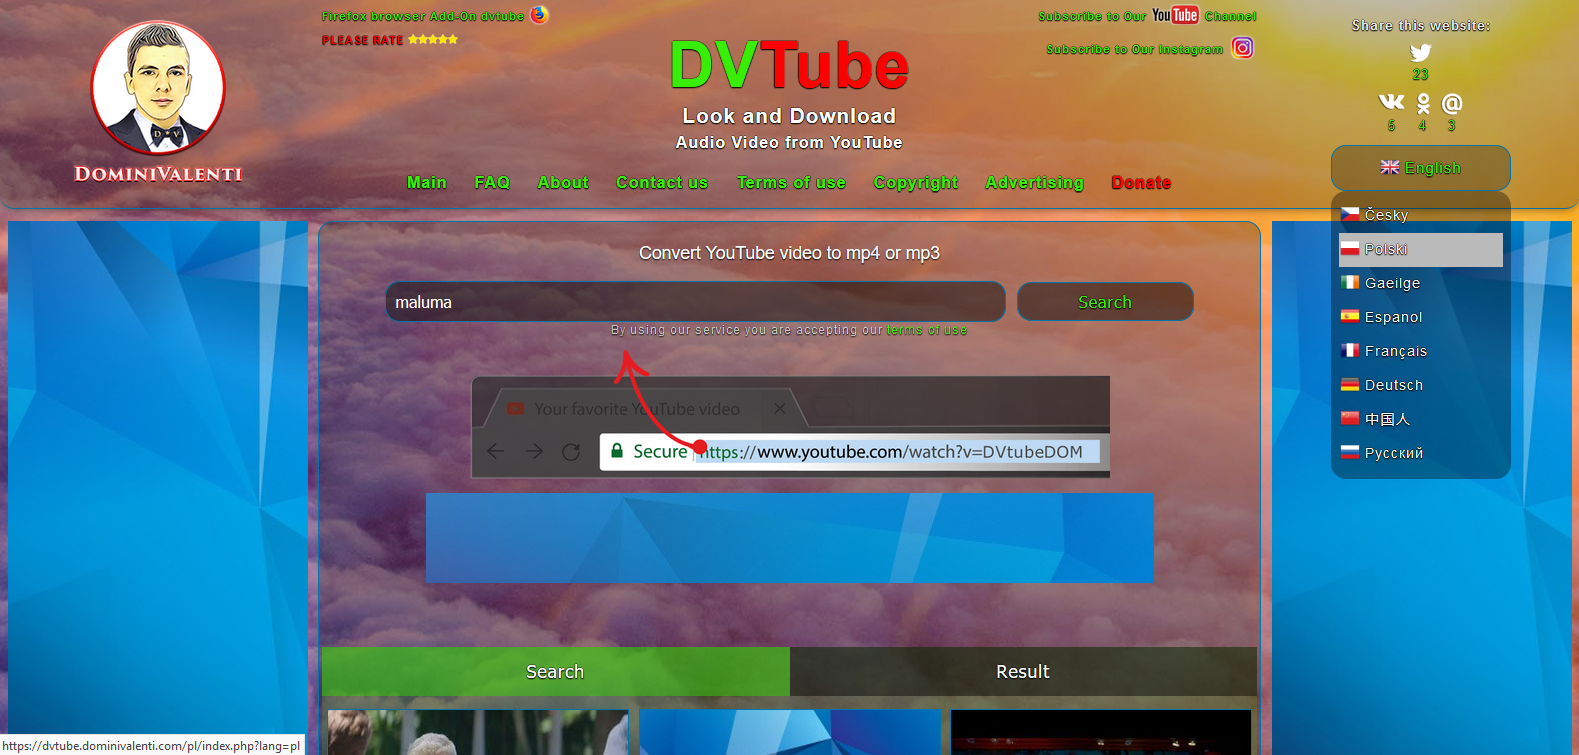 DVTube - full multi languages website for download video and audio from YouTube